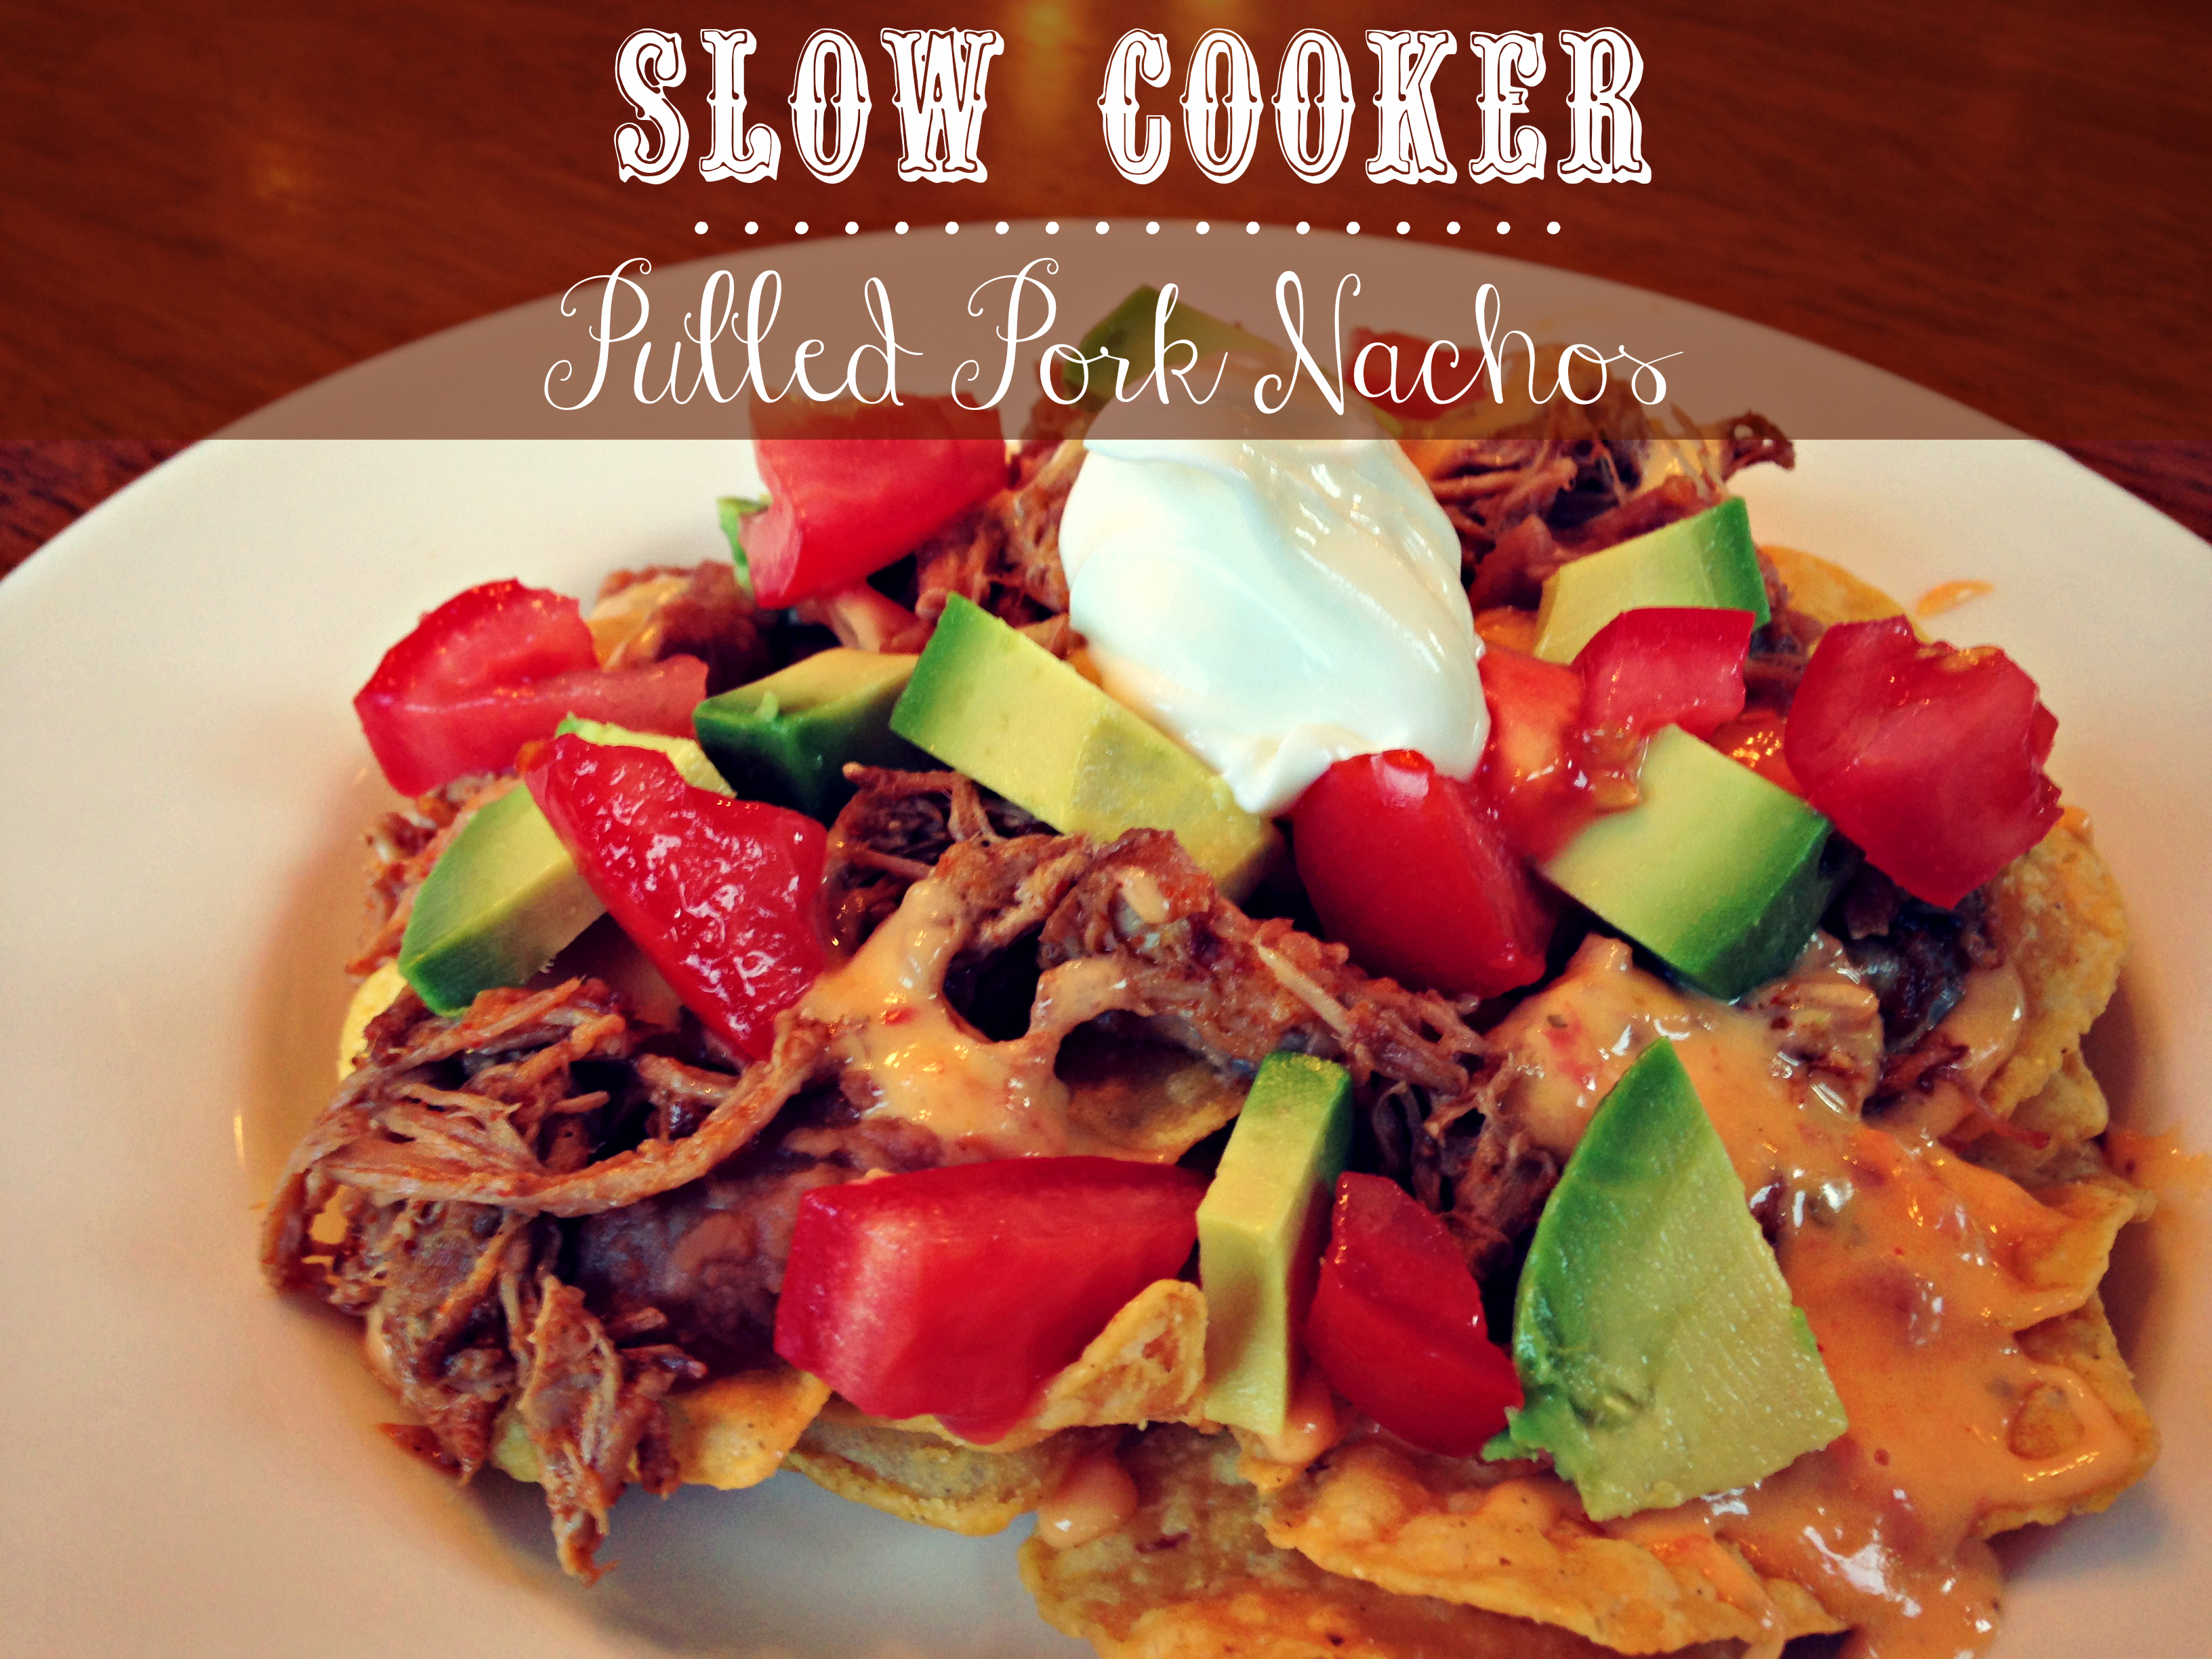 Tailgating with Pork: Slow Cooker Pulled Pork Nachos